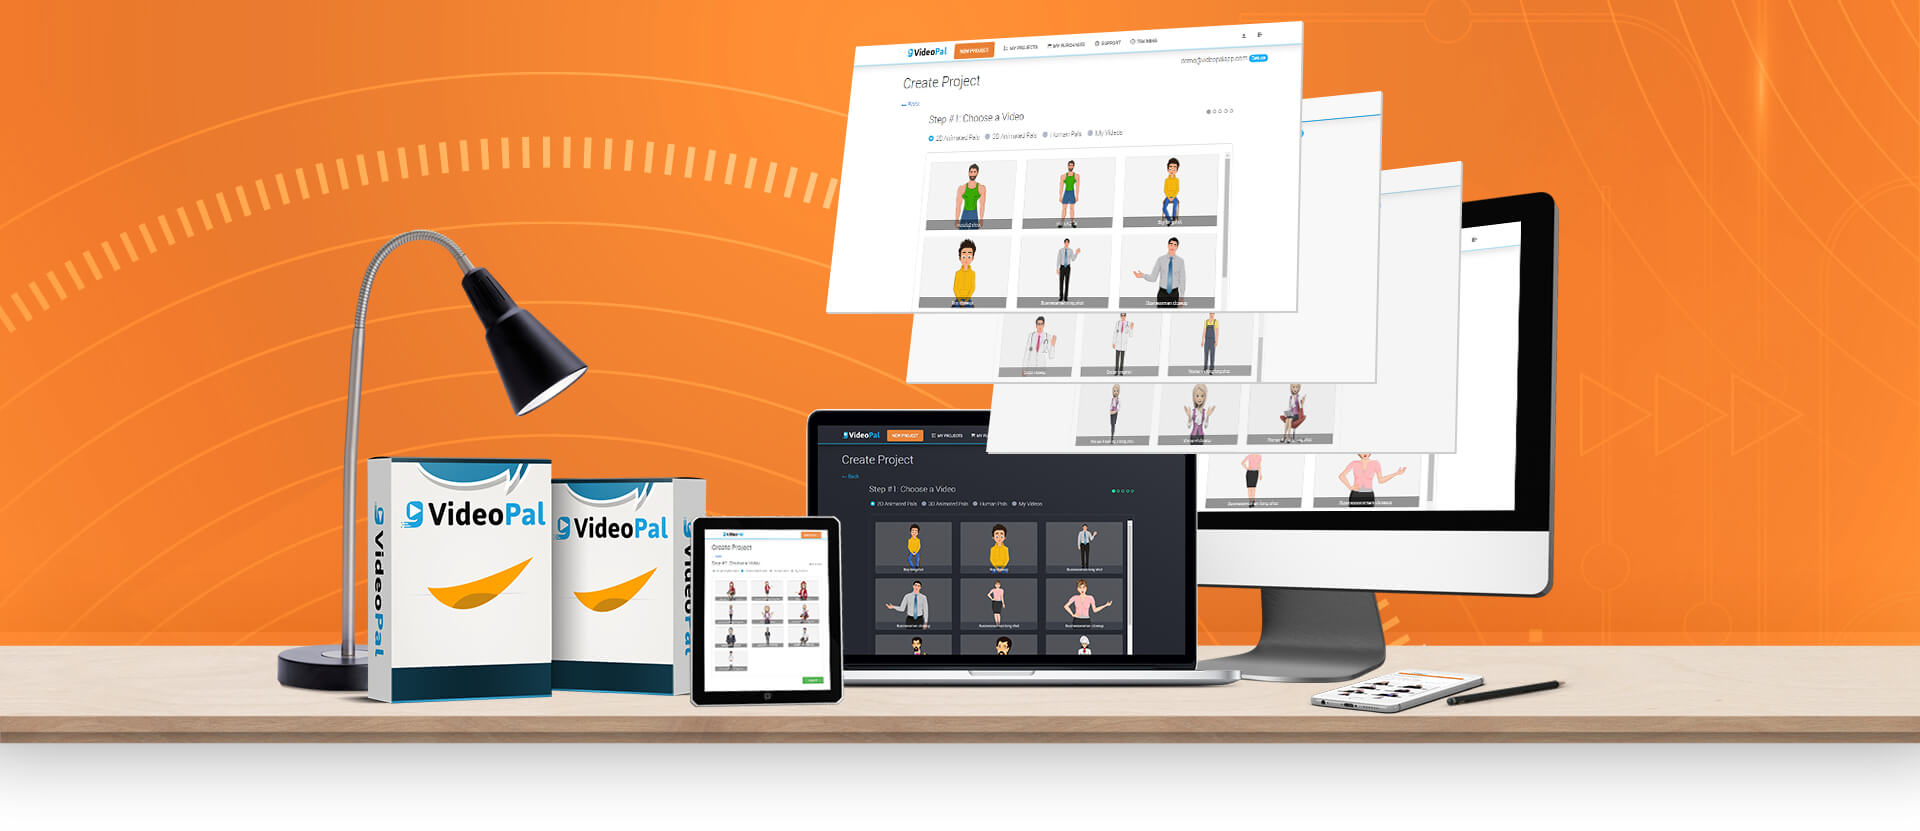 VideoPal Review – DON'T BUY BEFORE YOU READ! : New Revolutionary Software Platform To Boost Leads, Sales, And Profits, Guaranteed! [Create Fully Interactive 3d, 2d And Human Talking Video Avatars In Seconds With This Futuristic Award Winning Technology]VideoPal Review – DON'T BUY BEFORE YOU READ! : New Revolutionary Software Platform To Boost Leads, Sales, And Profits, Guaranteed! [Create Fully Interactive 3d, 2d And Human Talking Video Avatars In Seconds With This Futuristic Award Winning Technology]